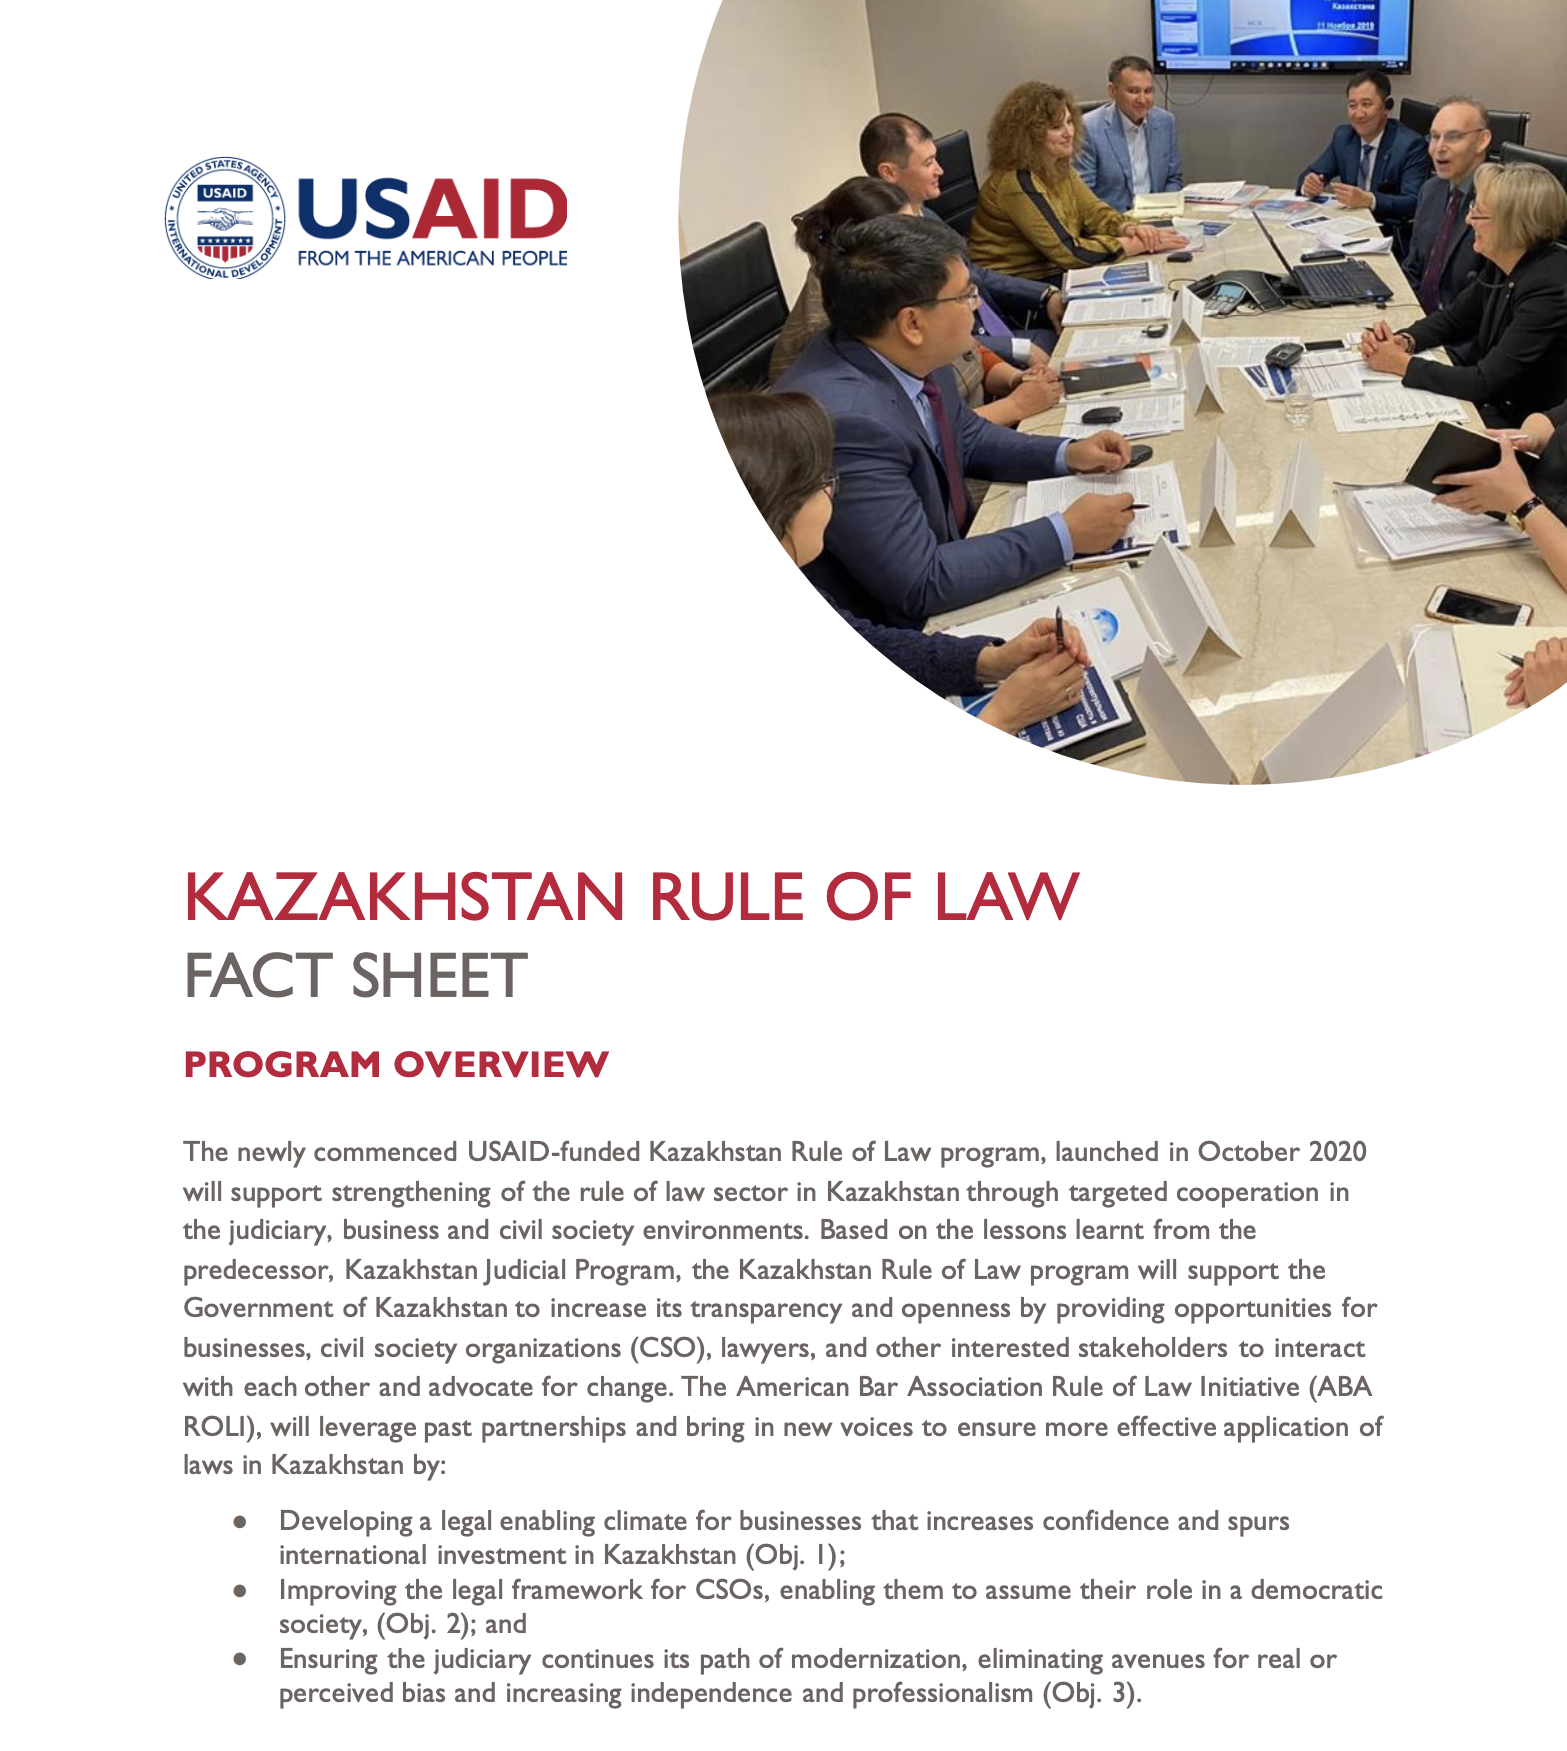 Kazakhstan Rule of Law Fact Sheet